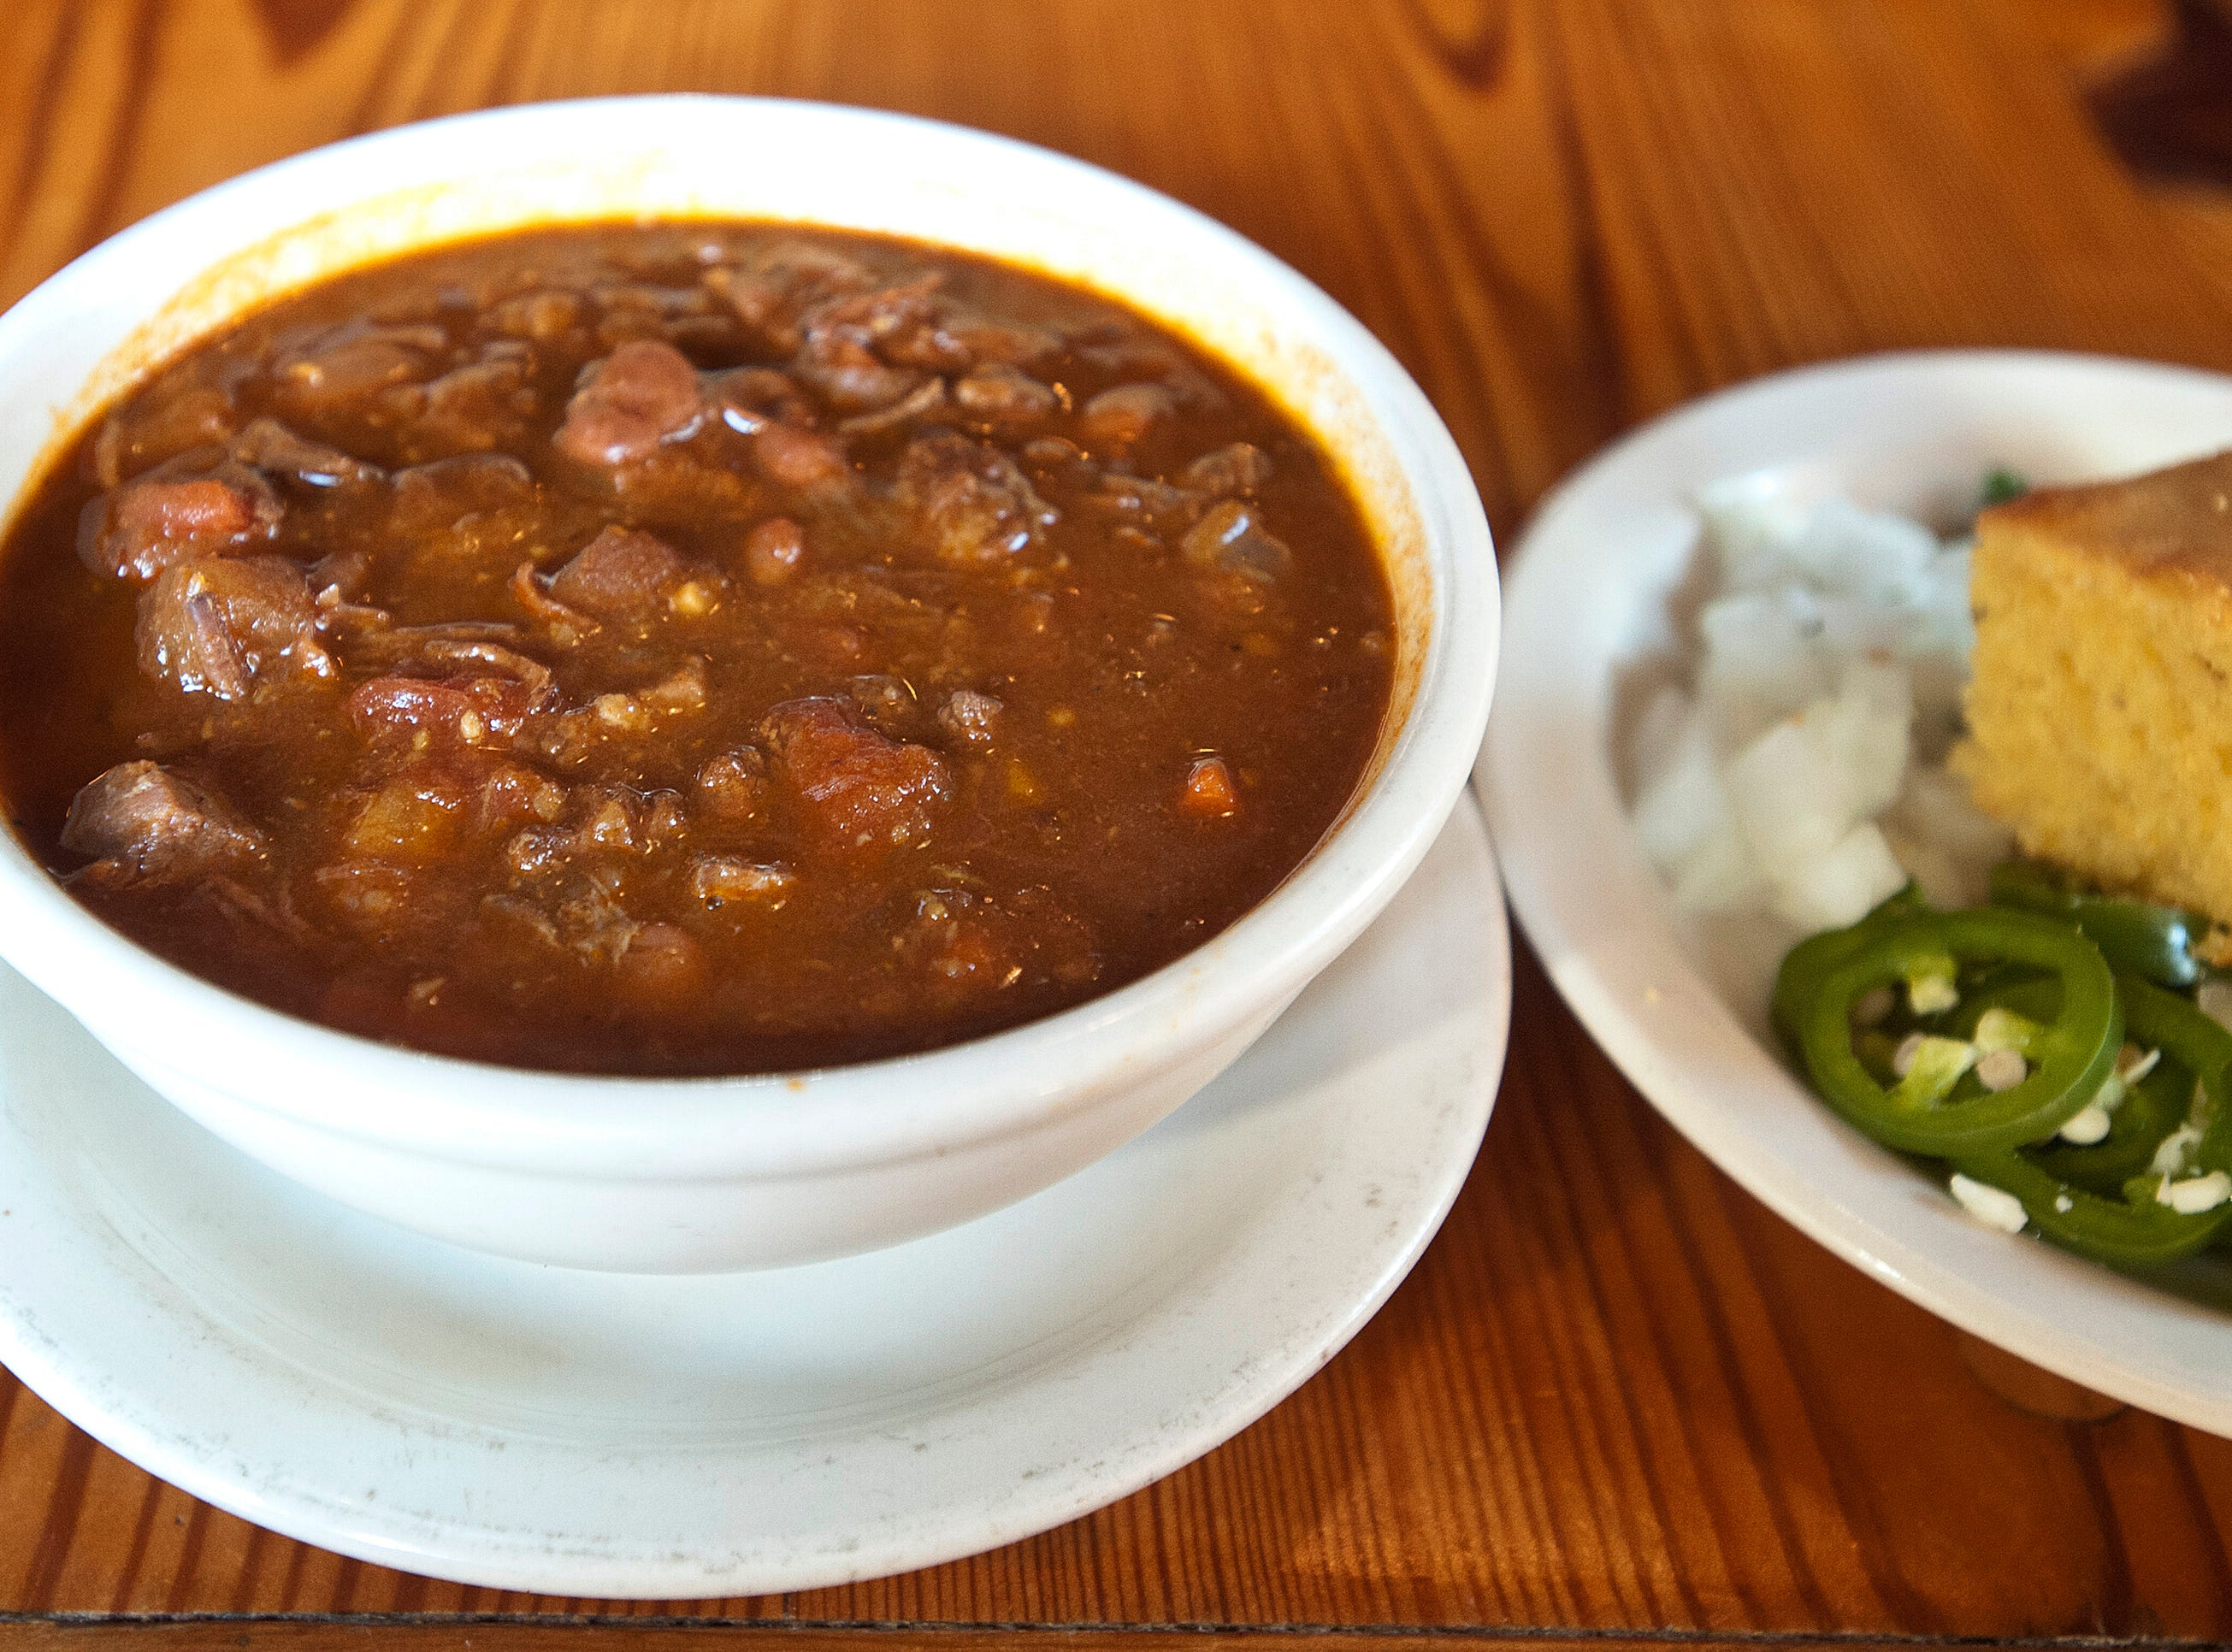 the Silver Dollar Bar and Restaurant' chili con frijoles is brisket mixed with beans and vegetables and served with a side of corn bread, pickled jalepenos, diced white onions, cilantro and white cheddar cheese.